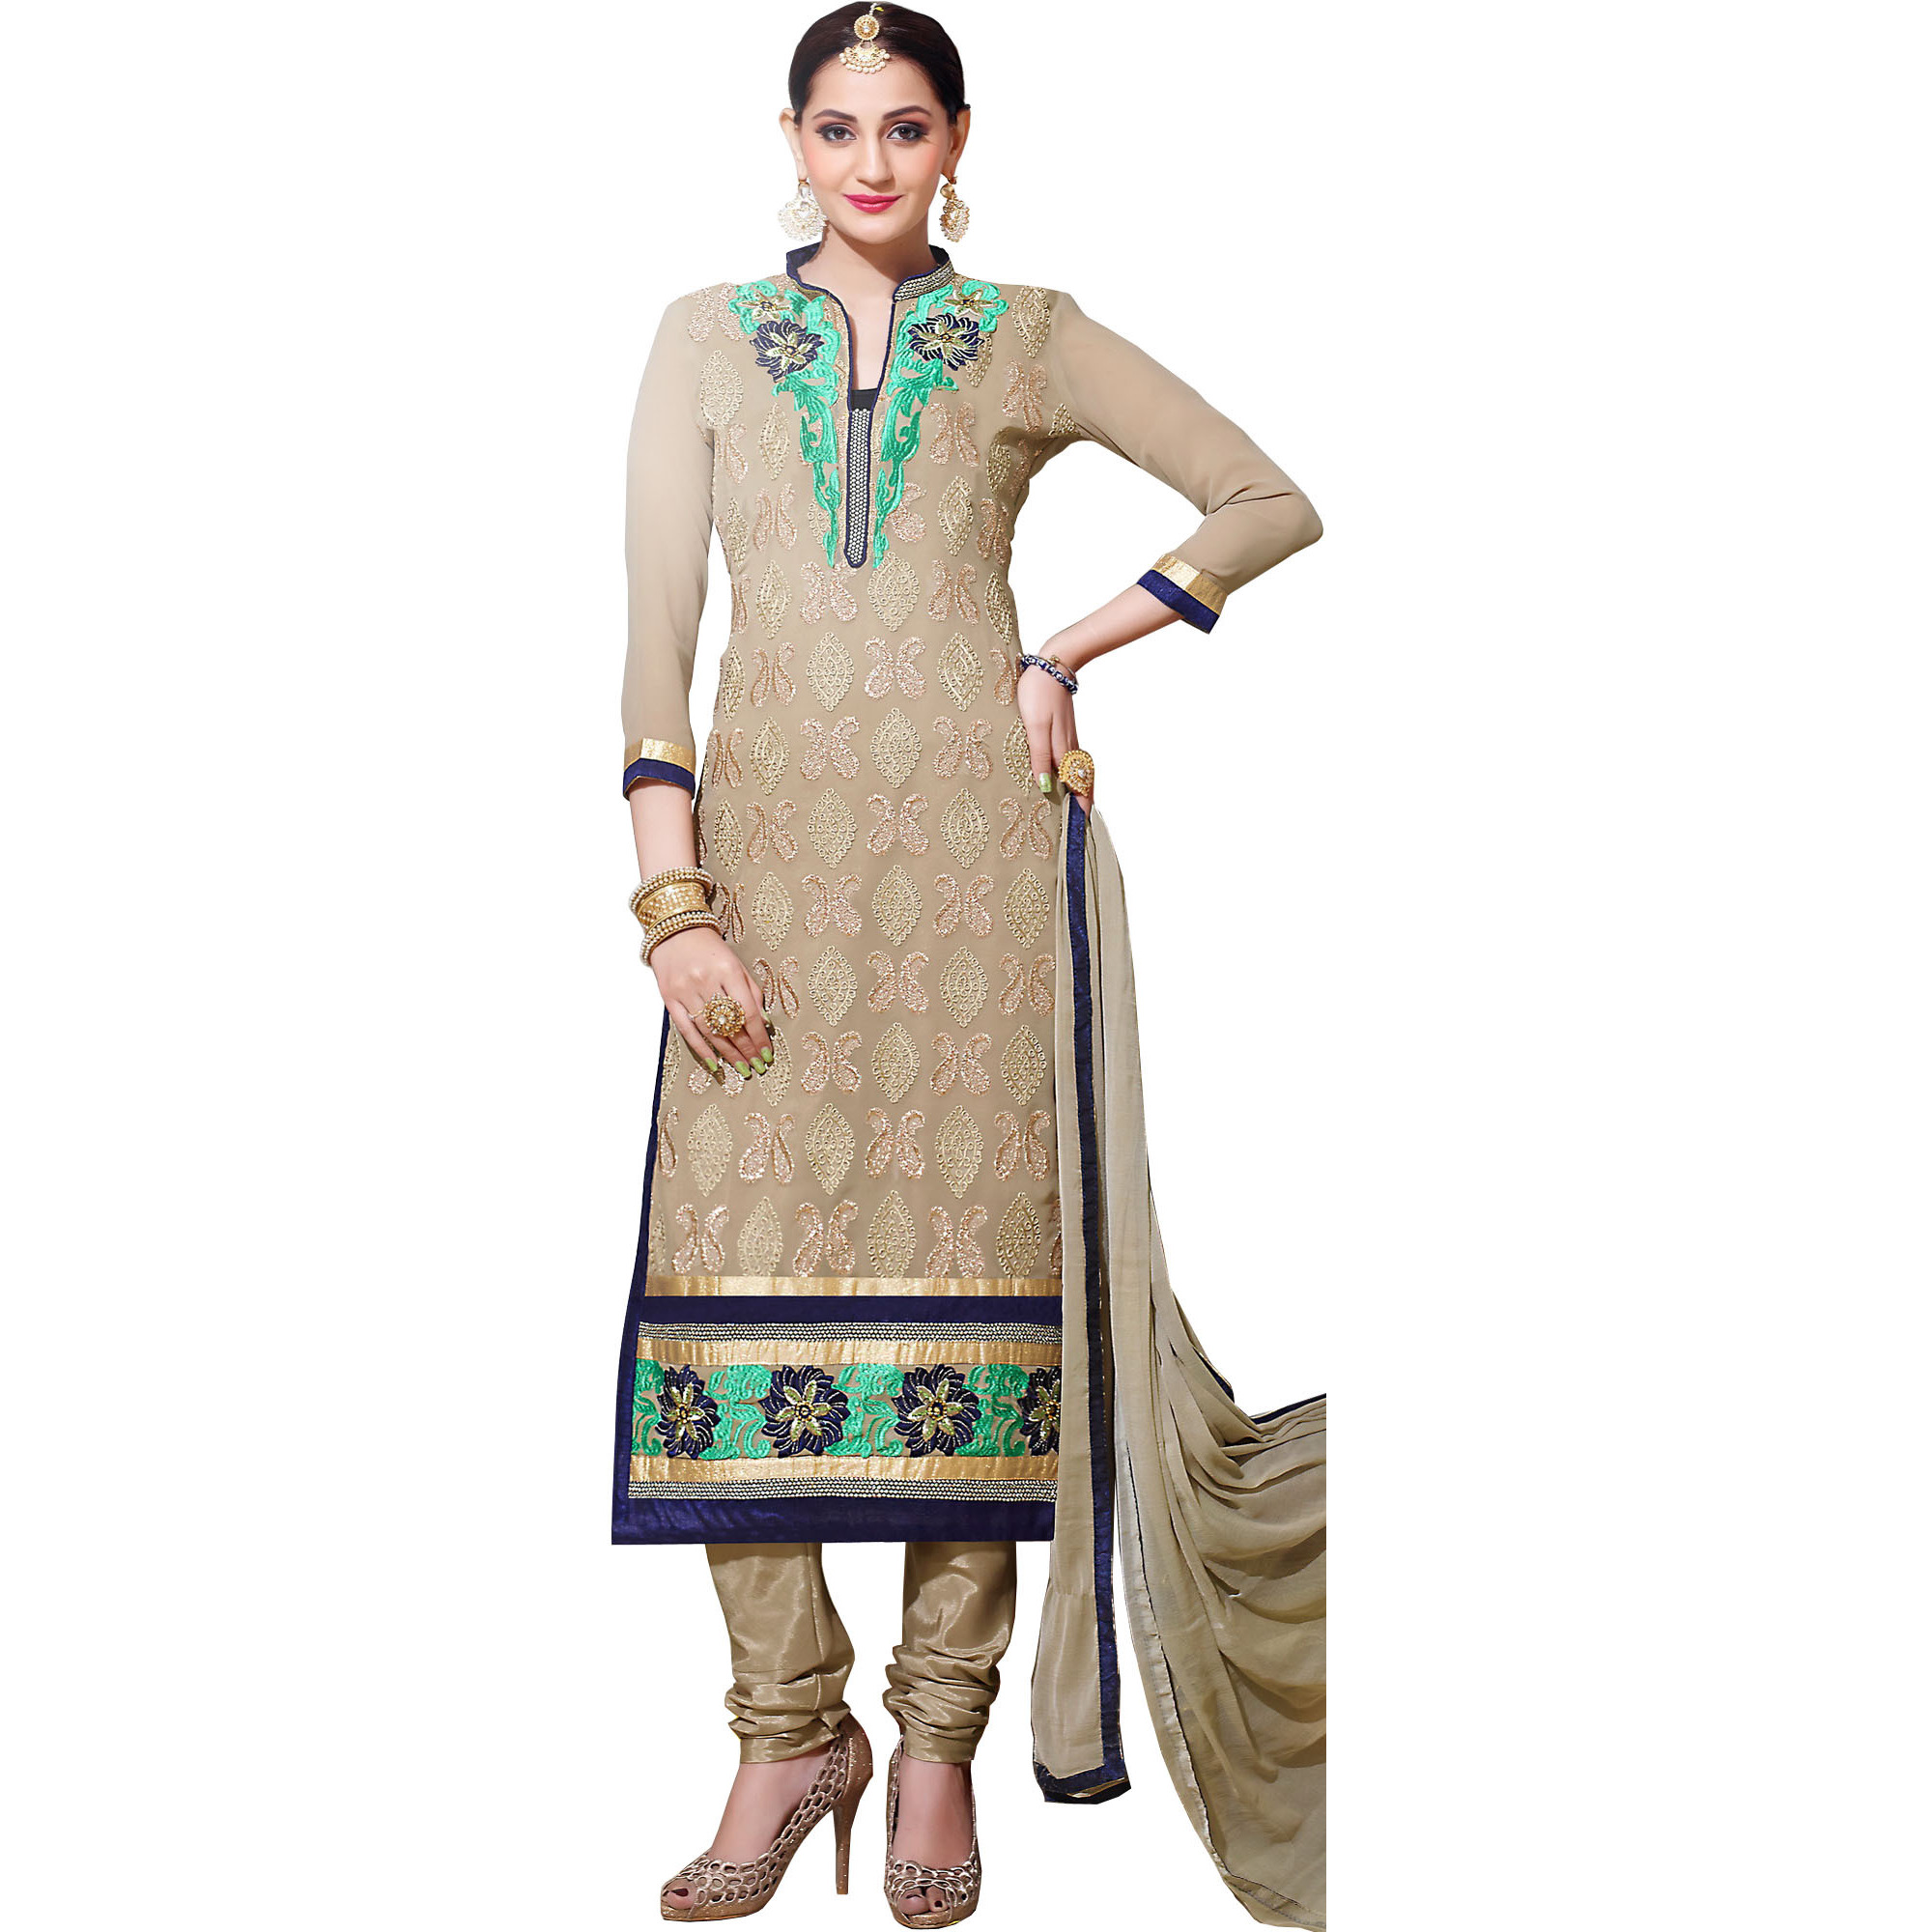 Oyster-Gray Long Choodidaar Kameez Suit with Embroidery All-Over